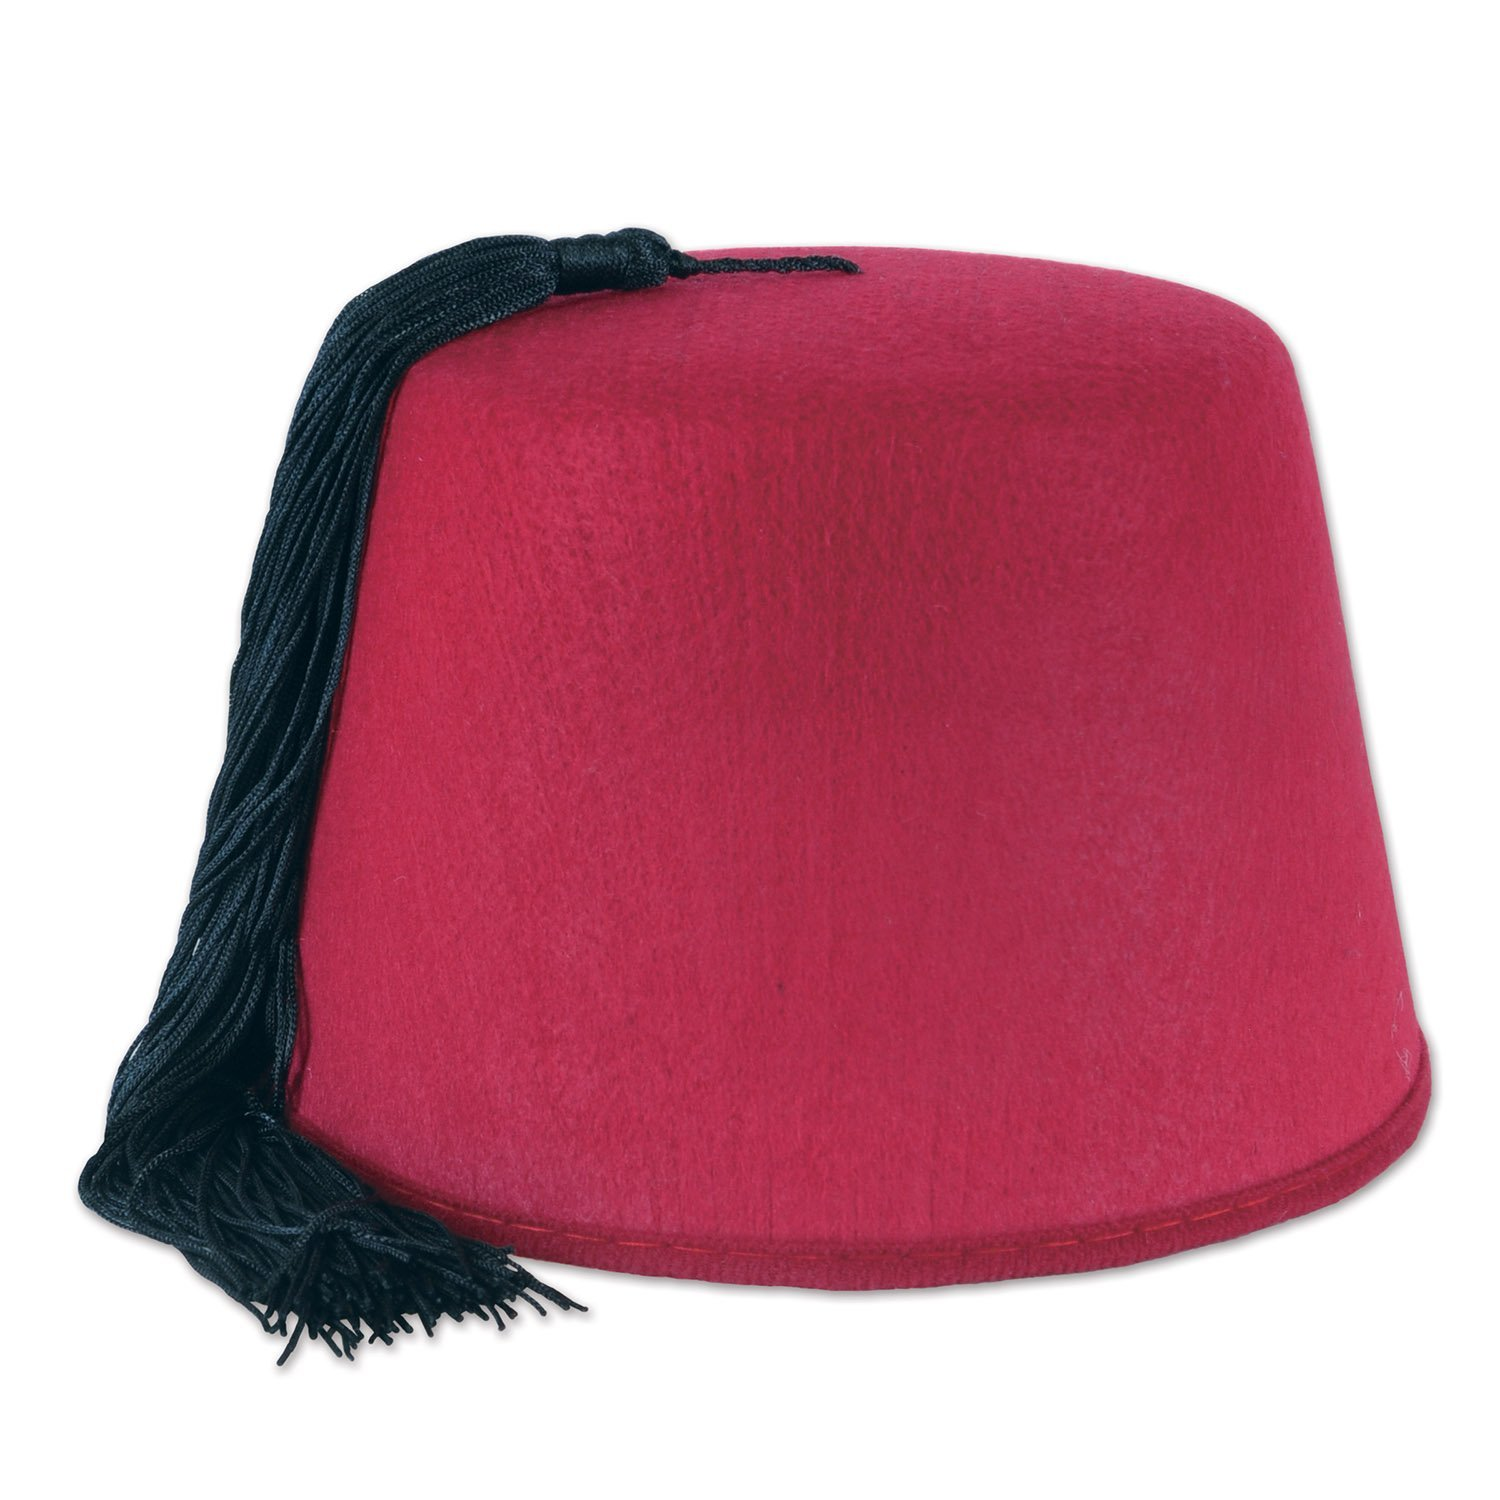 15c07b385ad Get Quotations · Beistle 60065 12 Piece Felt Fez Hats